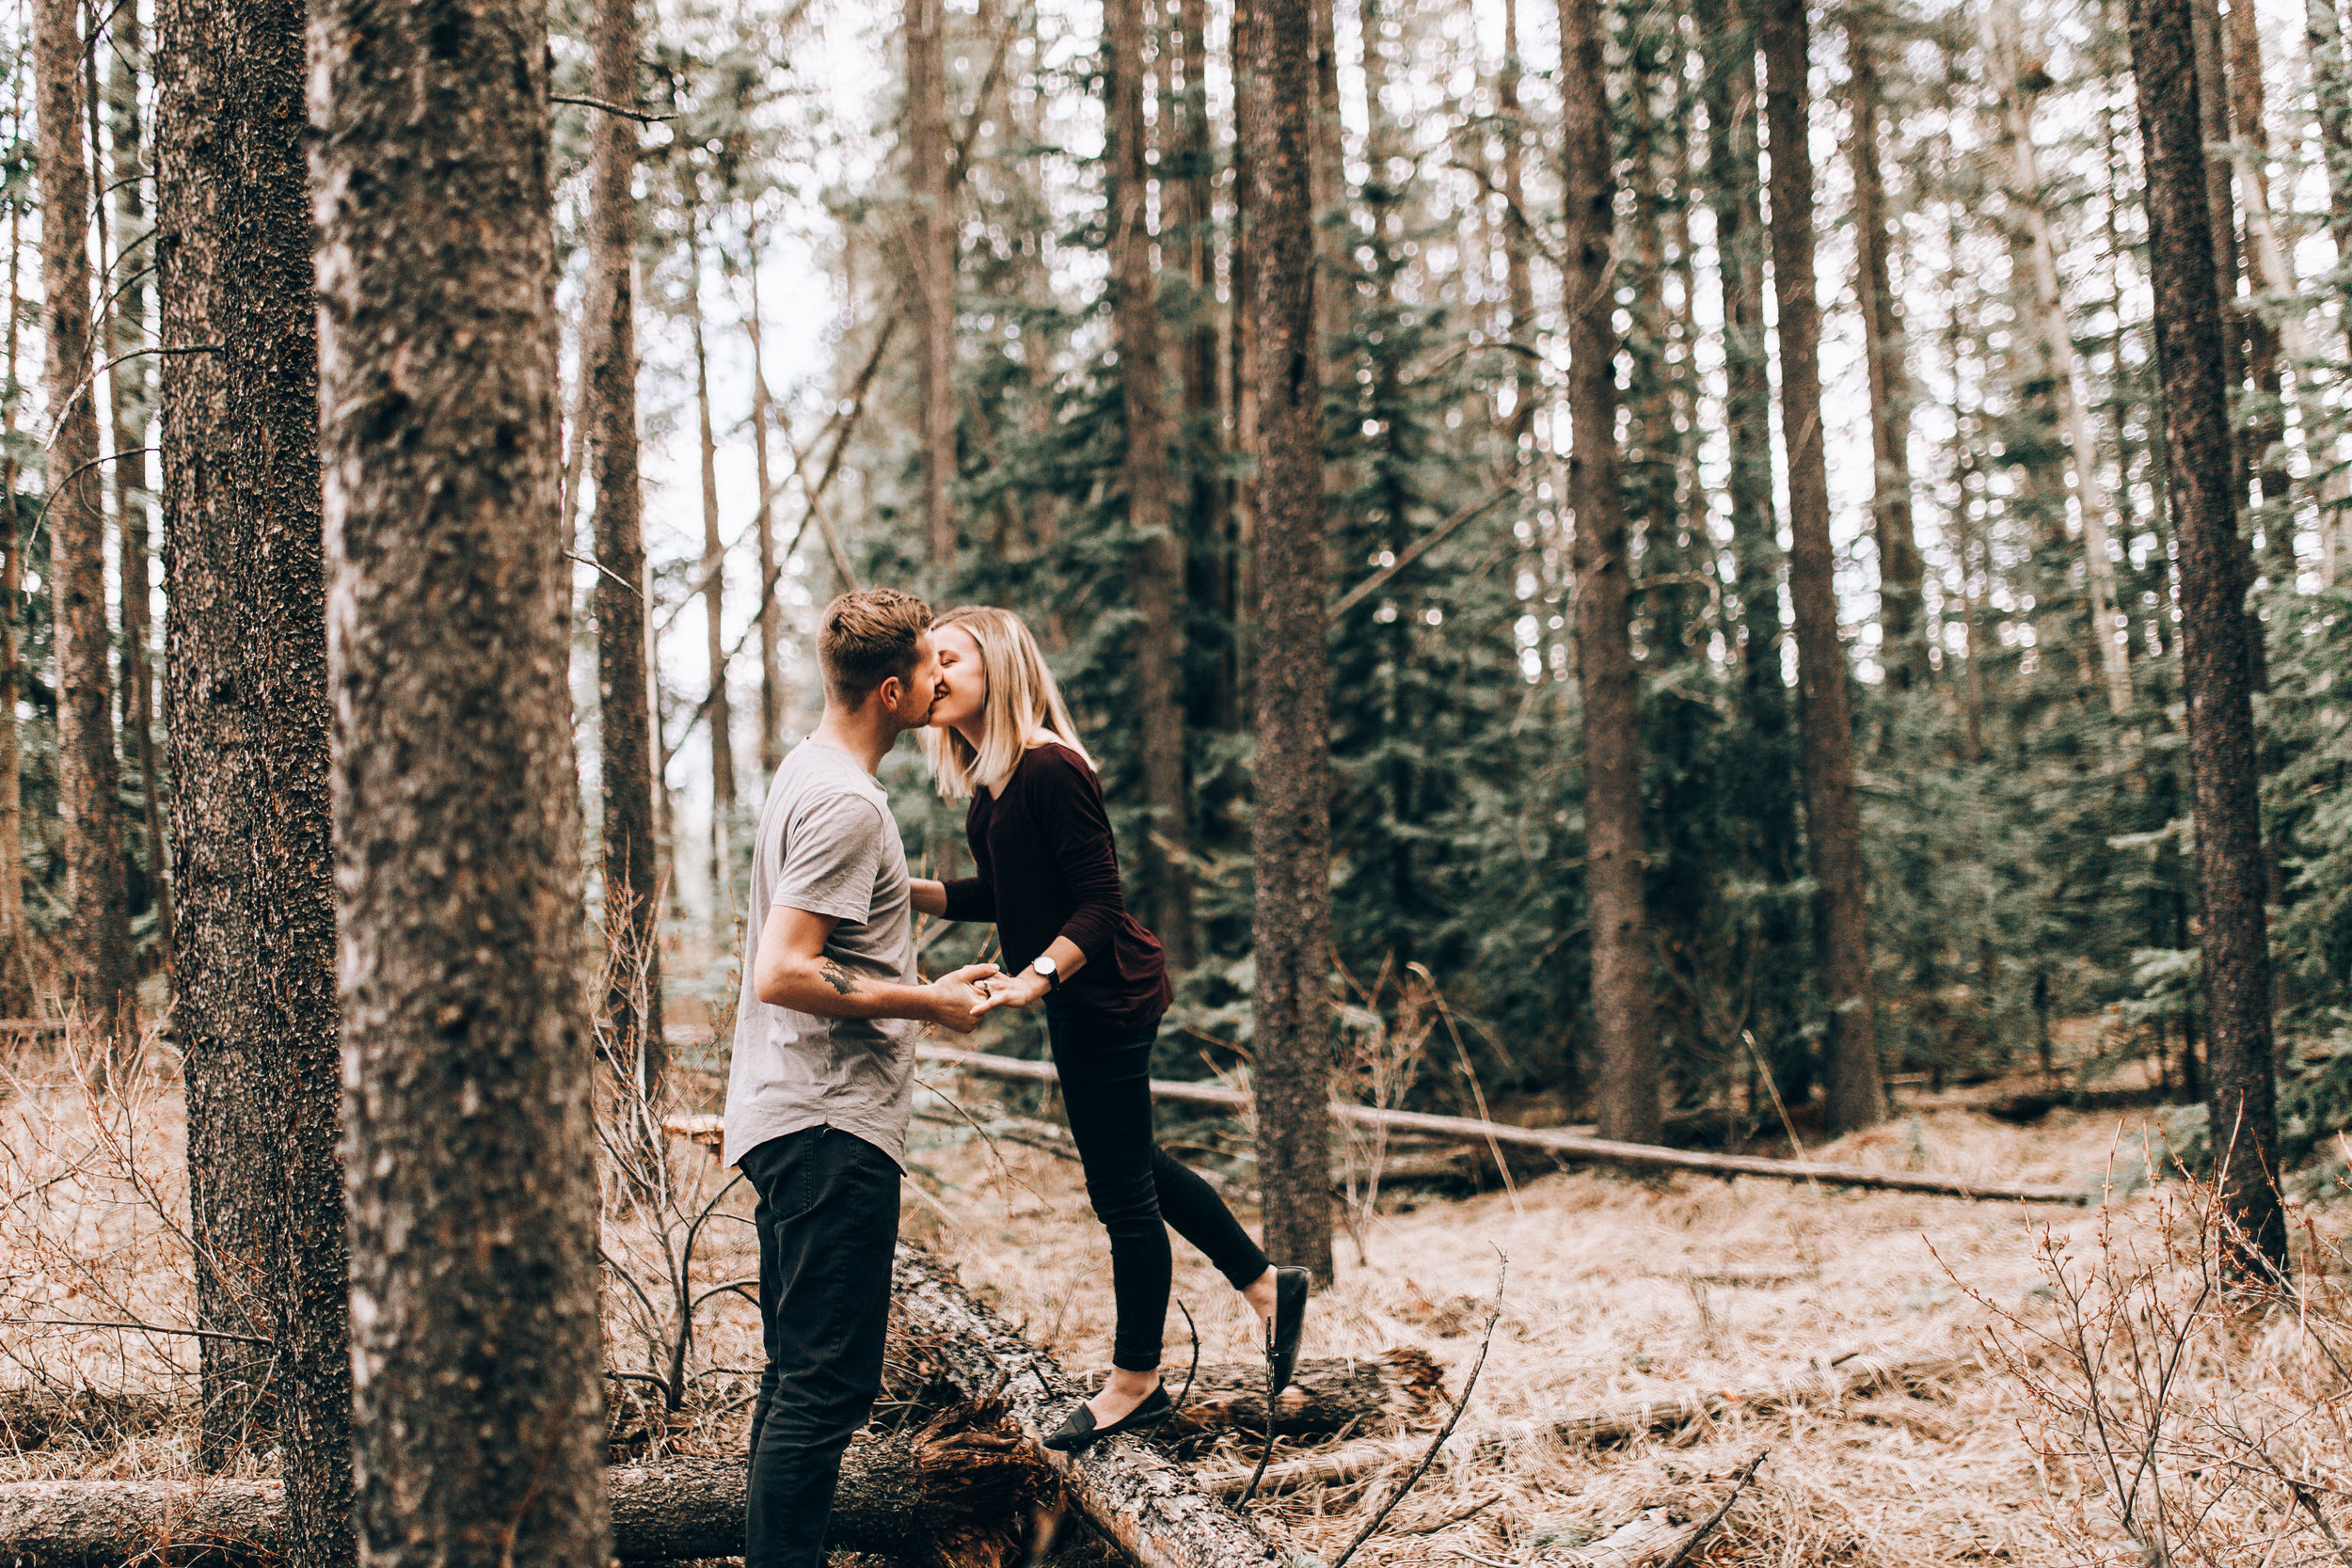 simpleperfectionsphotography.cullen+chelsey-28.jpg